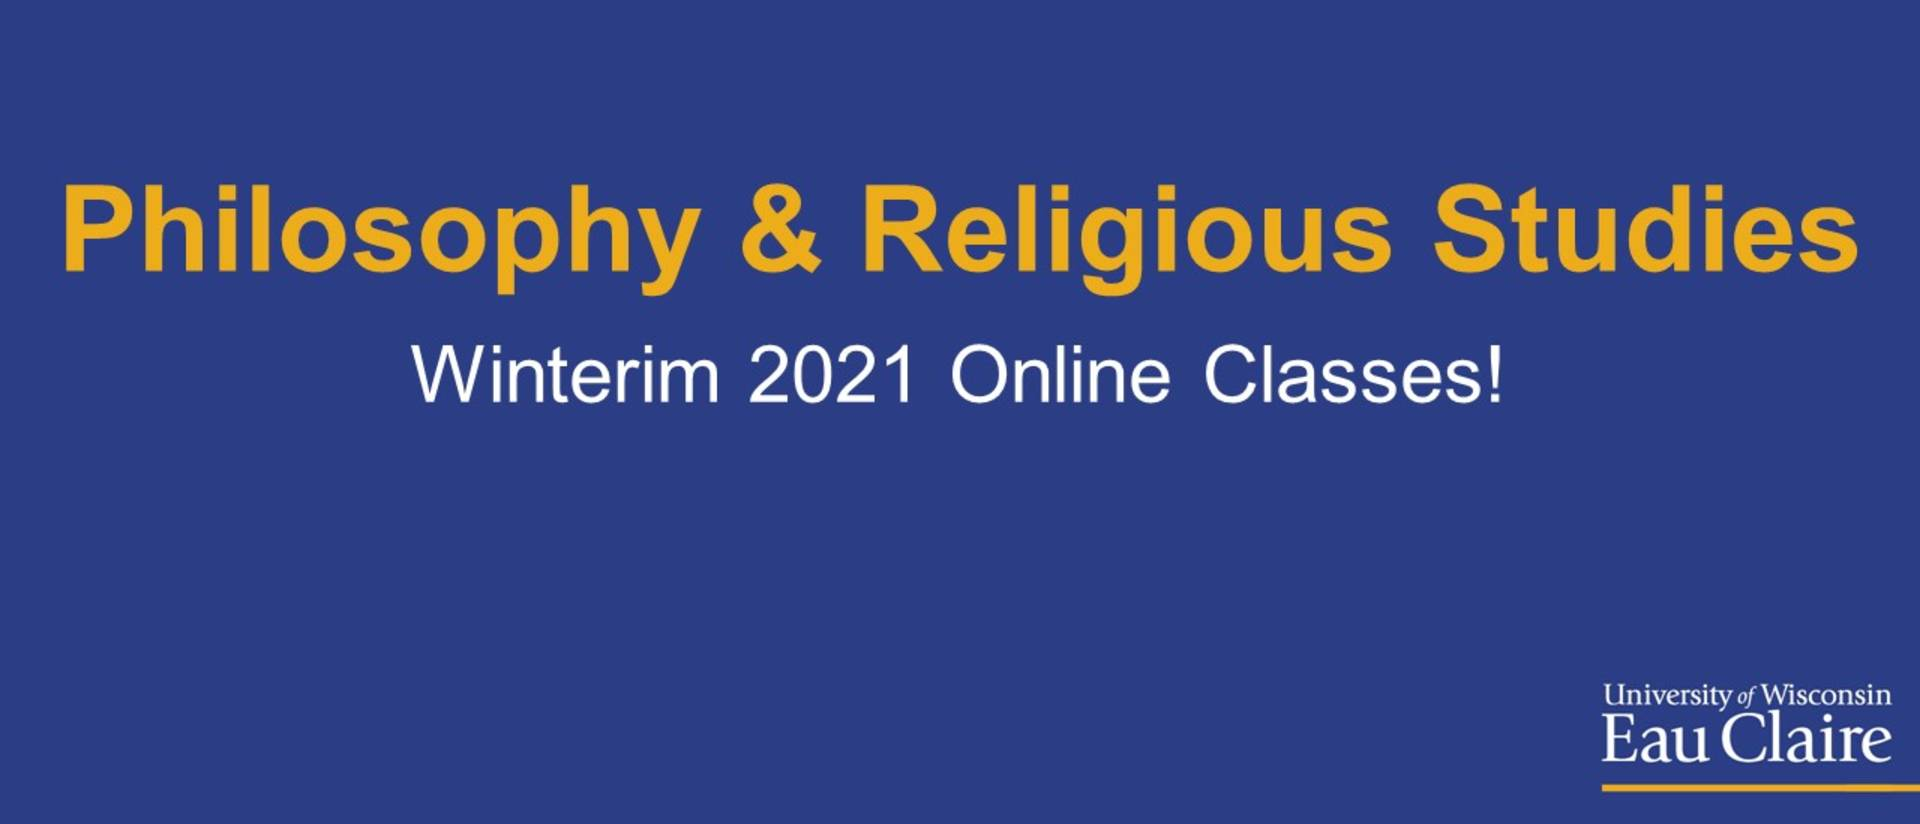 Philosophy & Religious Studies Winterim 2021